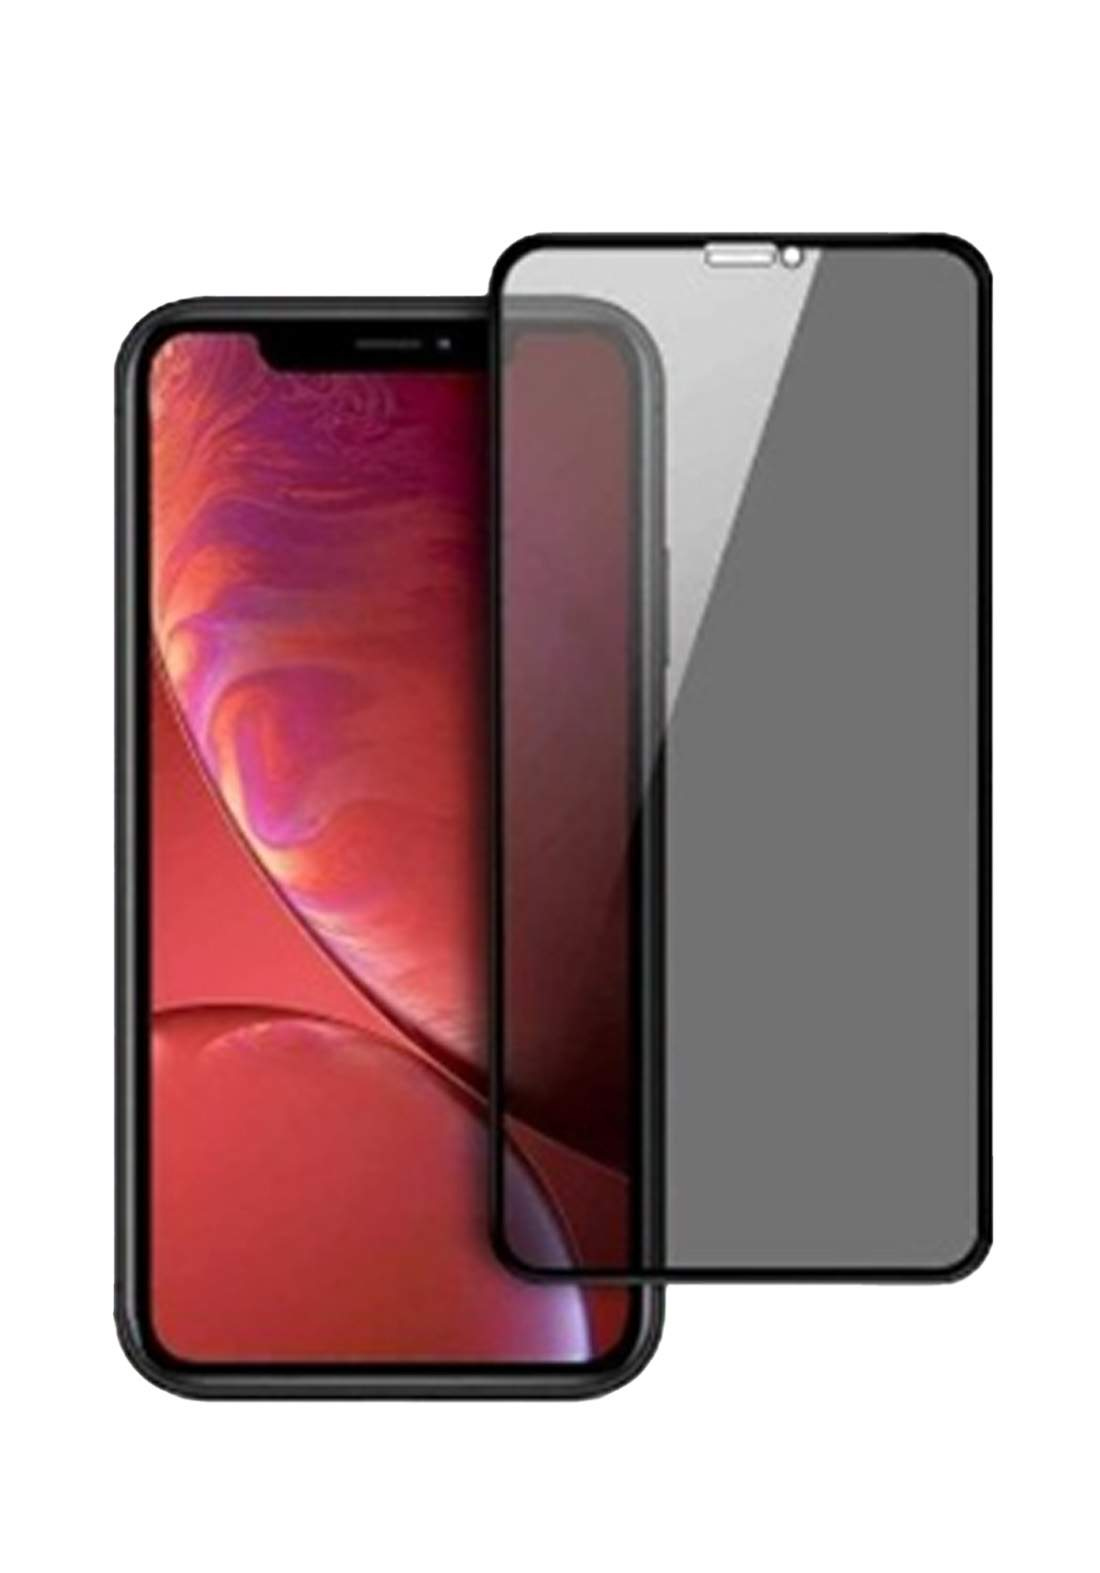 Optiva Privacy Glass Screen Protector For iPhone 11 - Black واقي شاشة